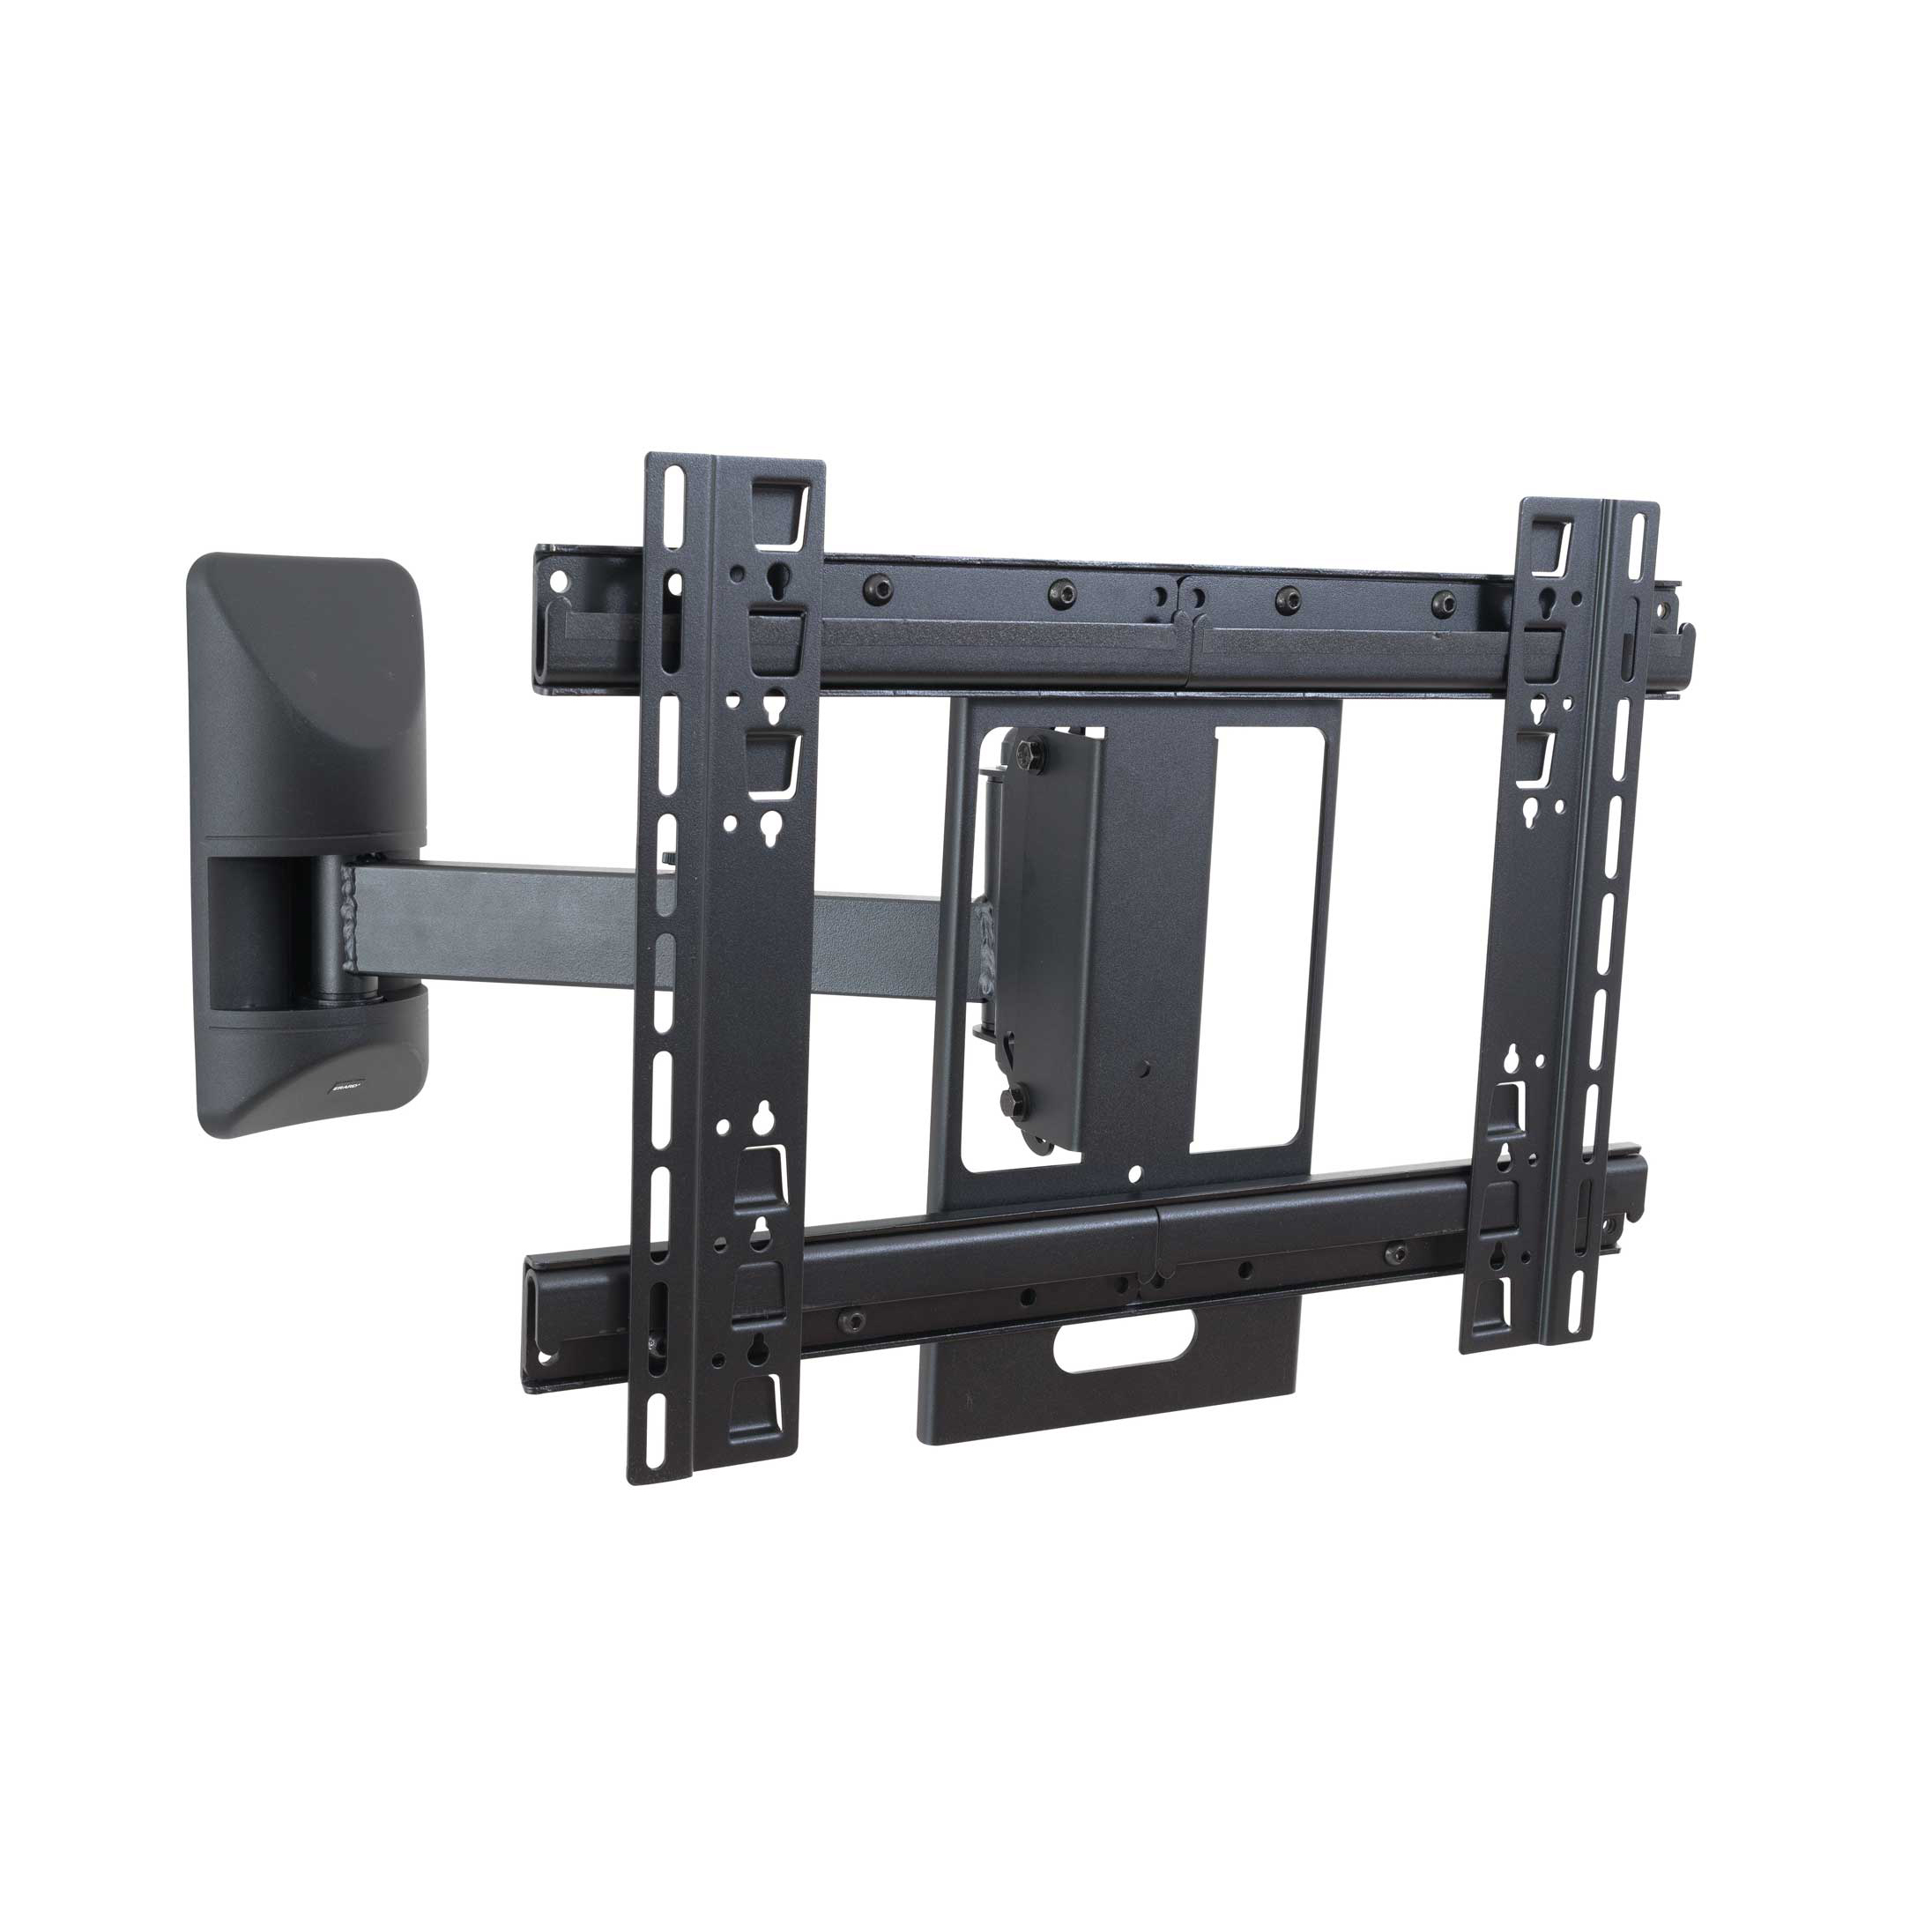 APPLIK TILTING AND SWIVELING - tilting and swiveling wall mount with offset